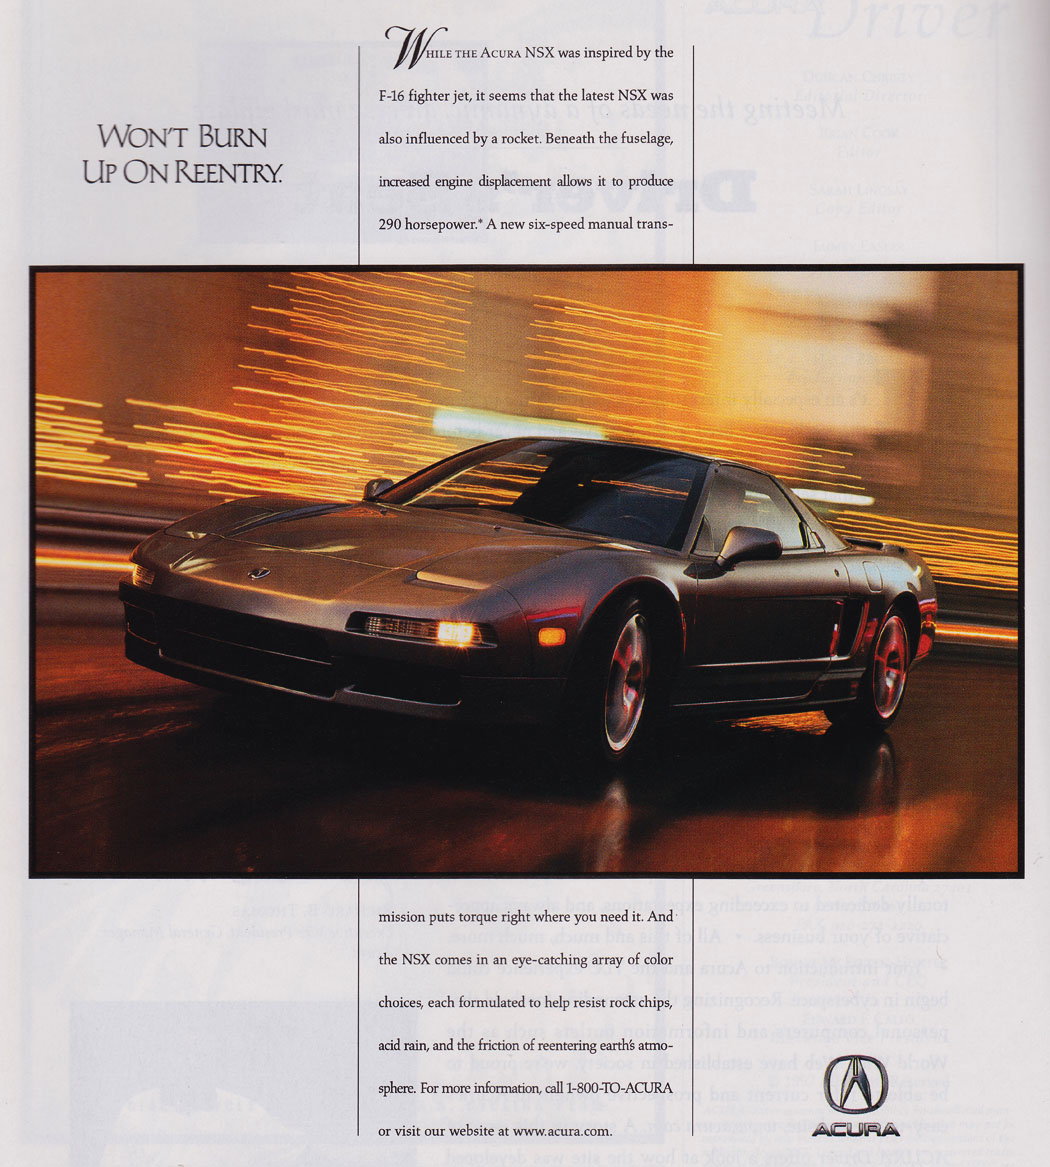 Throwback Thursday: Scans From 'Vintage' Acura Driver